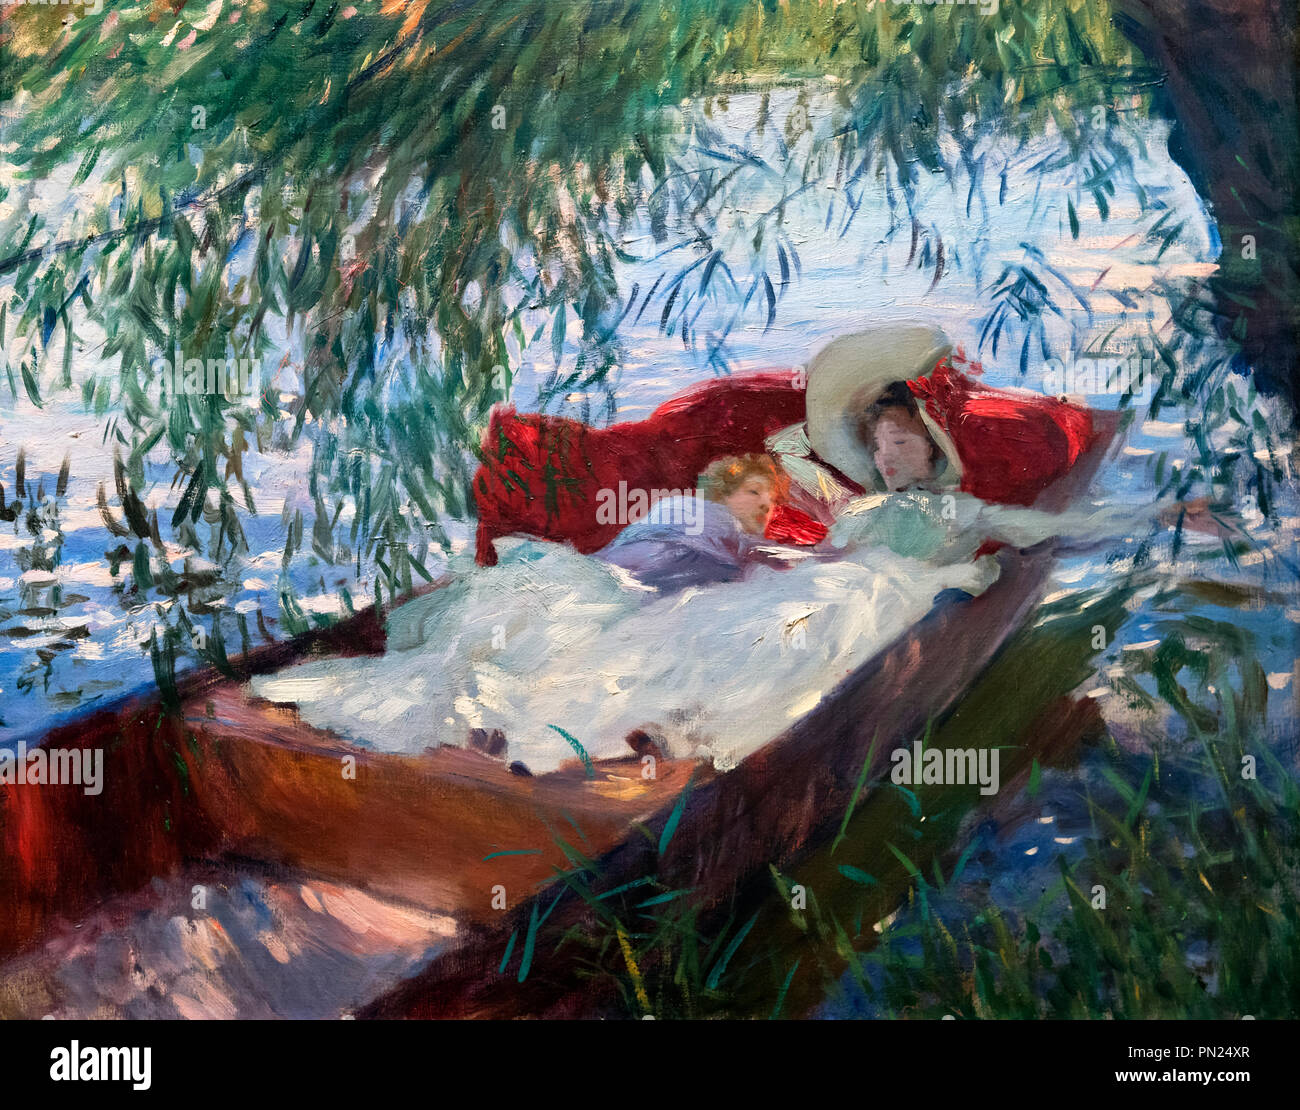 """Painting by John Singer Sargent (1856-1925) entitled """"Lady and Child Asleep in a Punt under the Willows"""", oil on canvas, 1887 Stock Photo"""